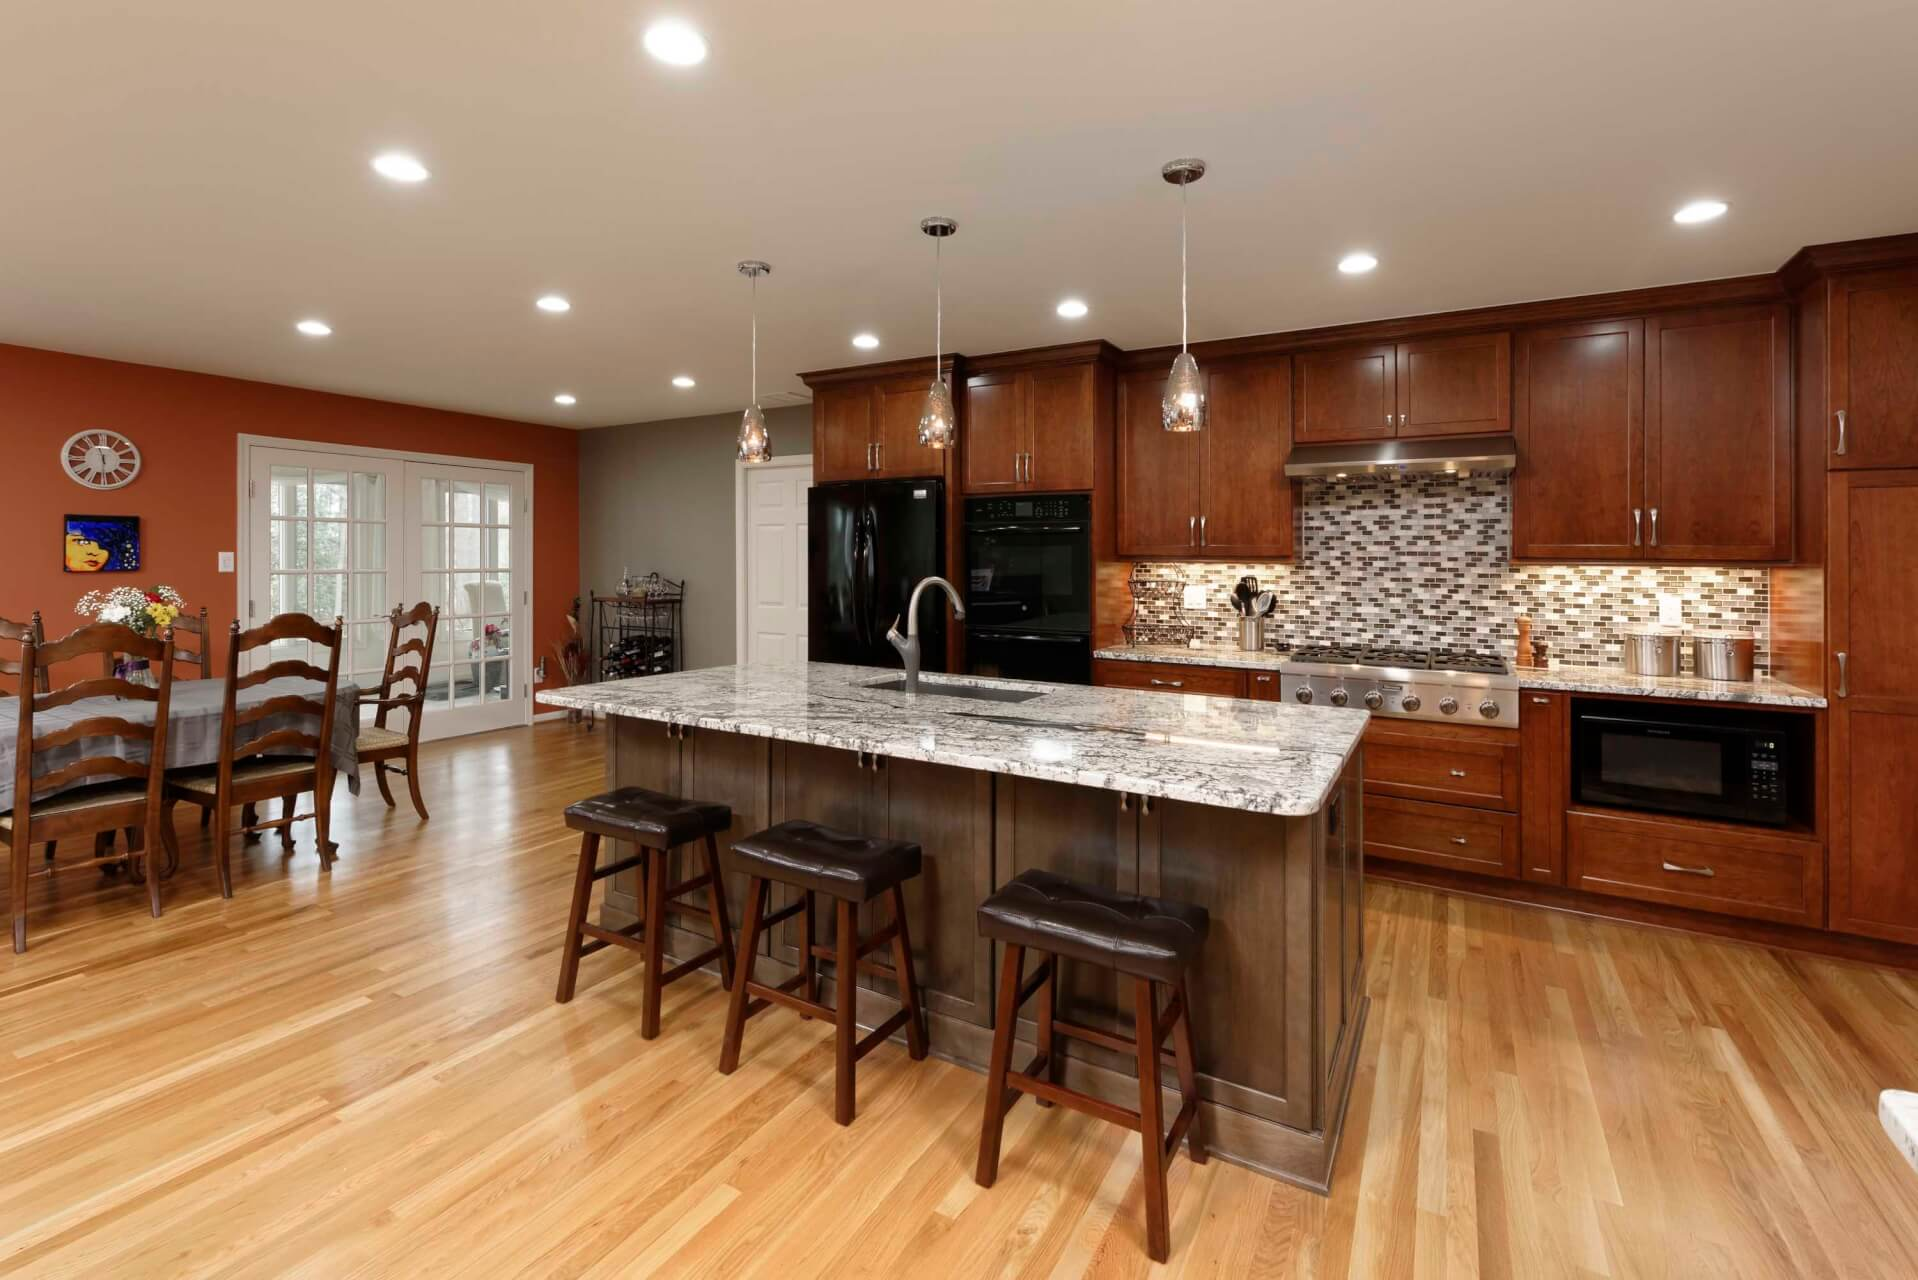 Voted Best Northern Virginia Kitchen and Bath Remodeling